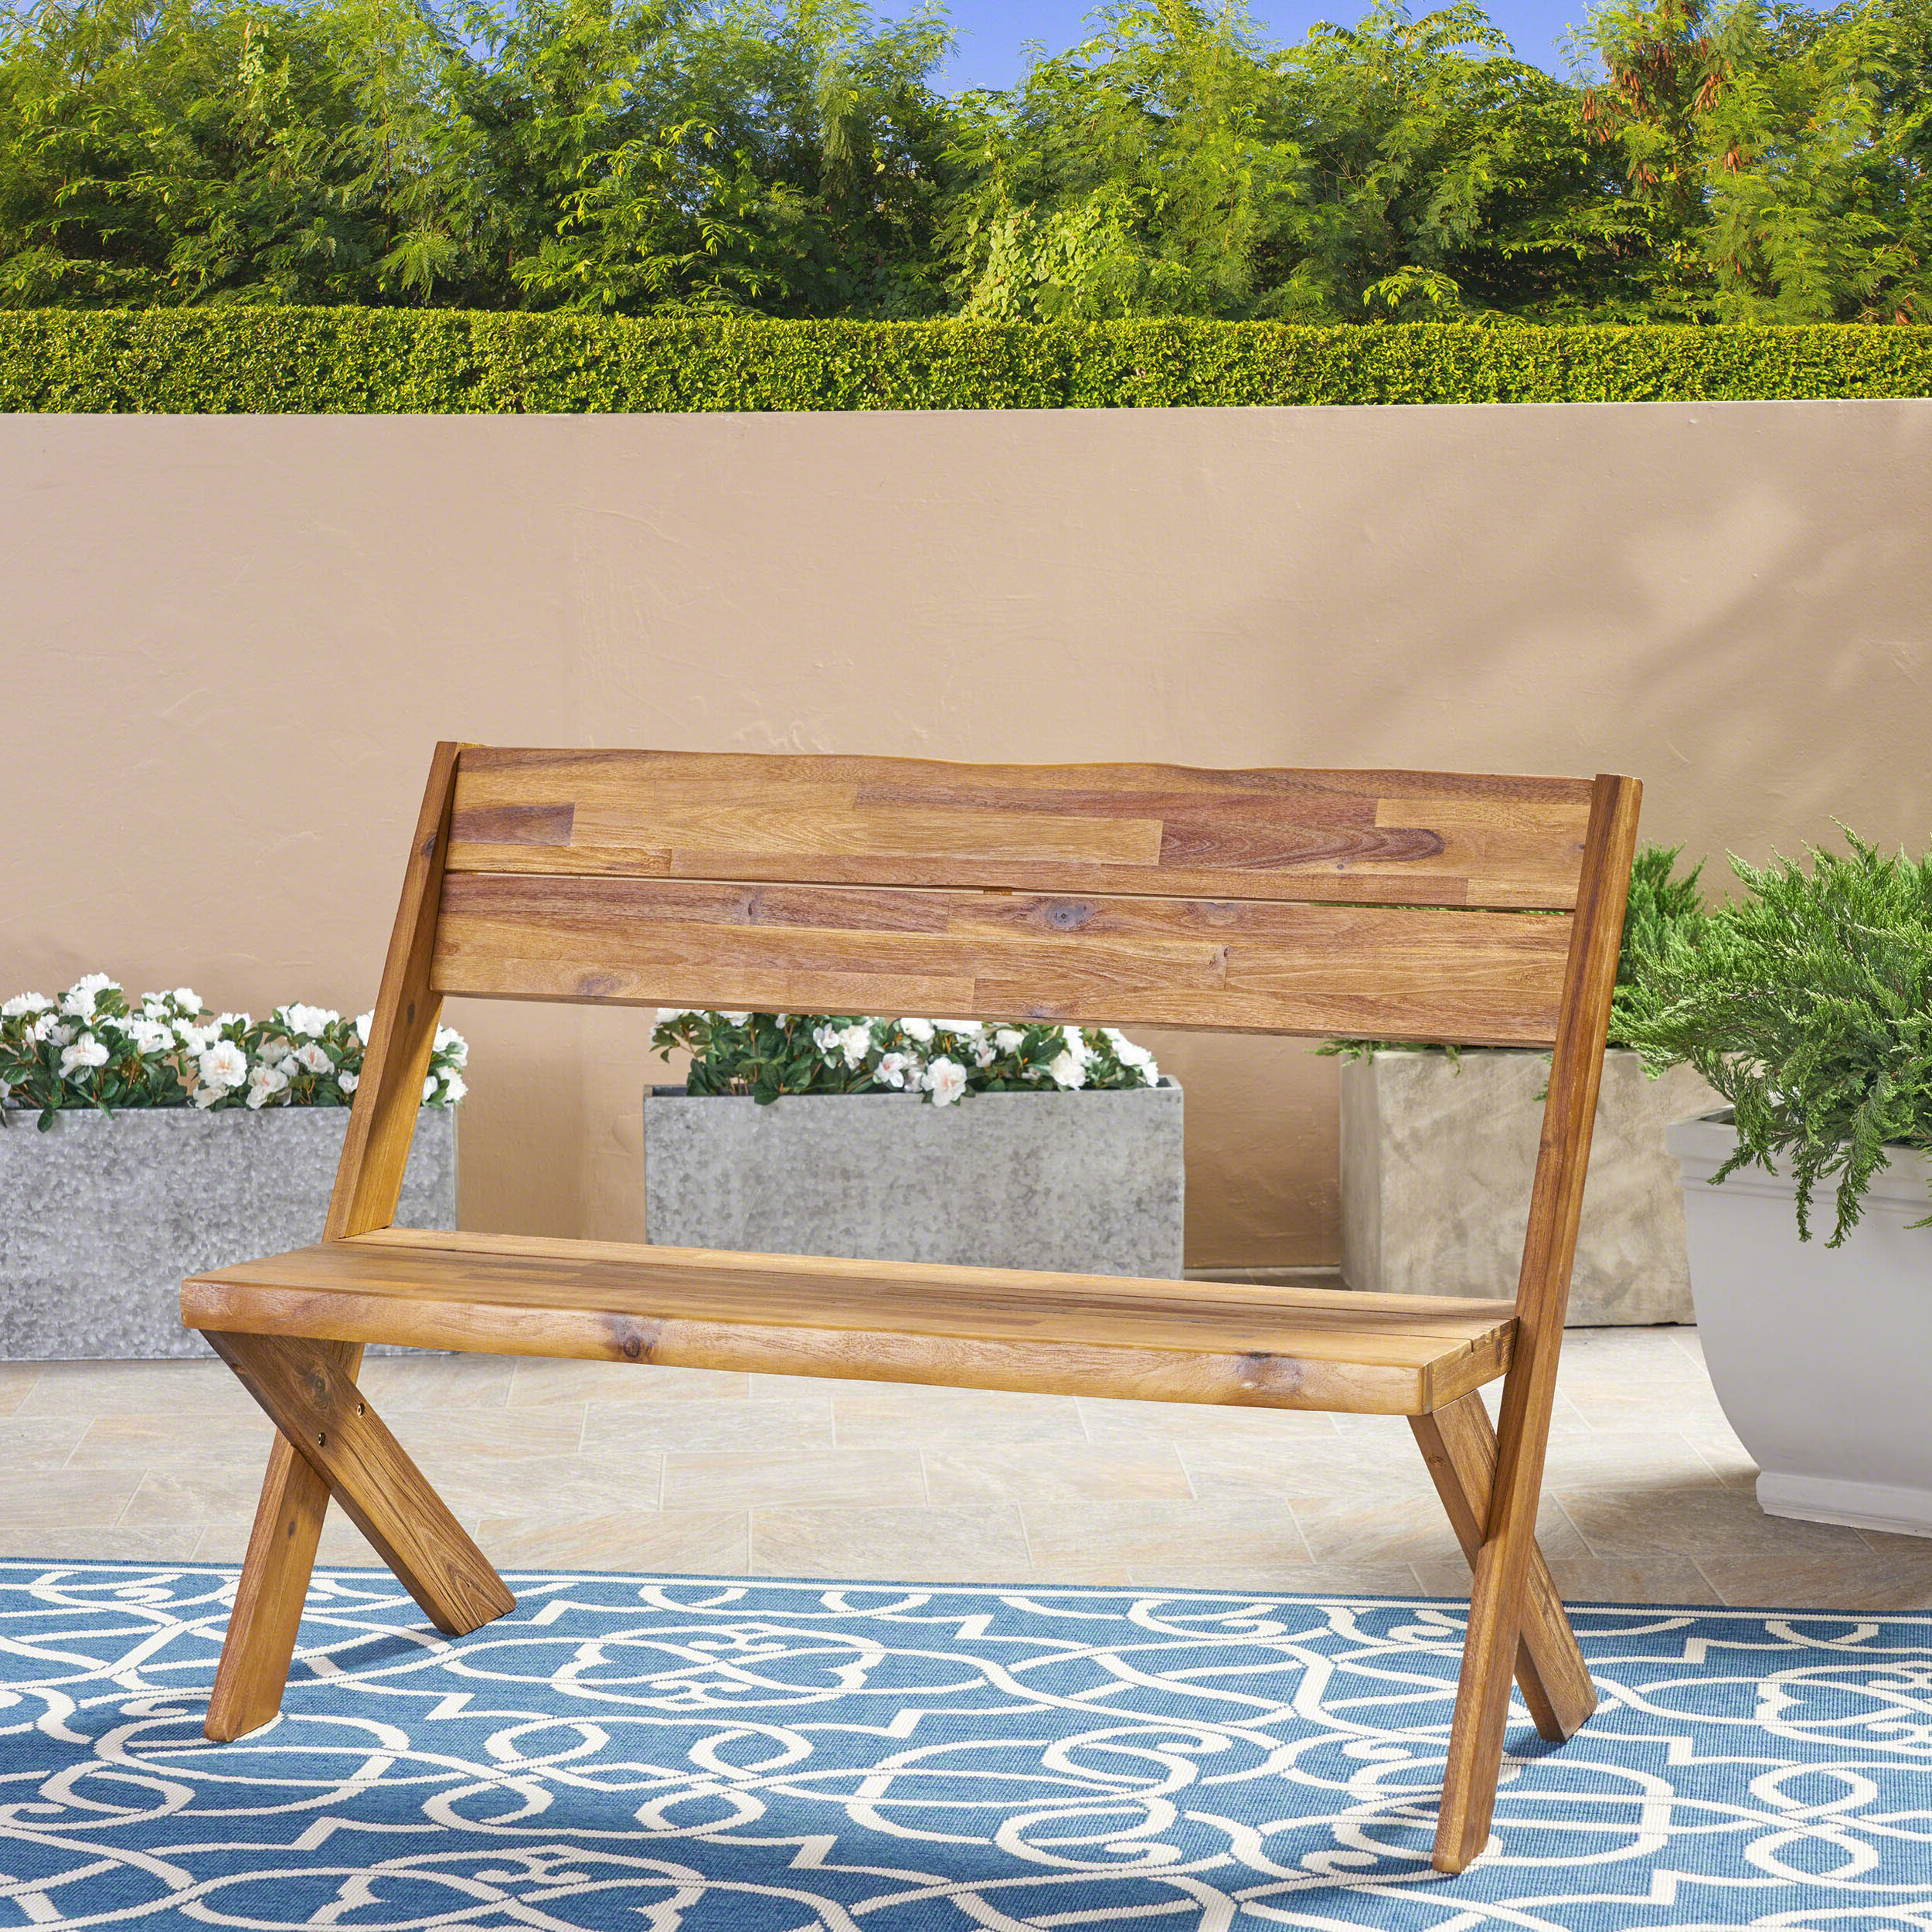 Cavin Garden Benches Intended For Popular Heatherfield Bench (View 6 of 30)